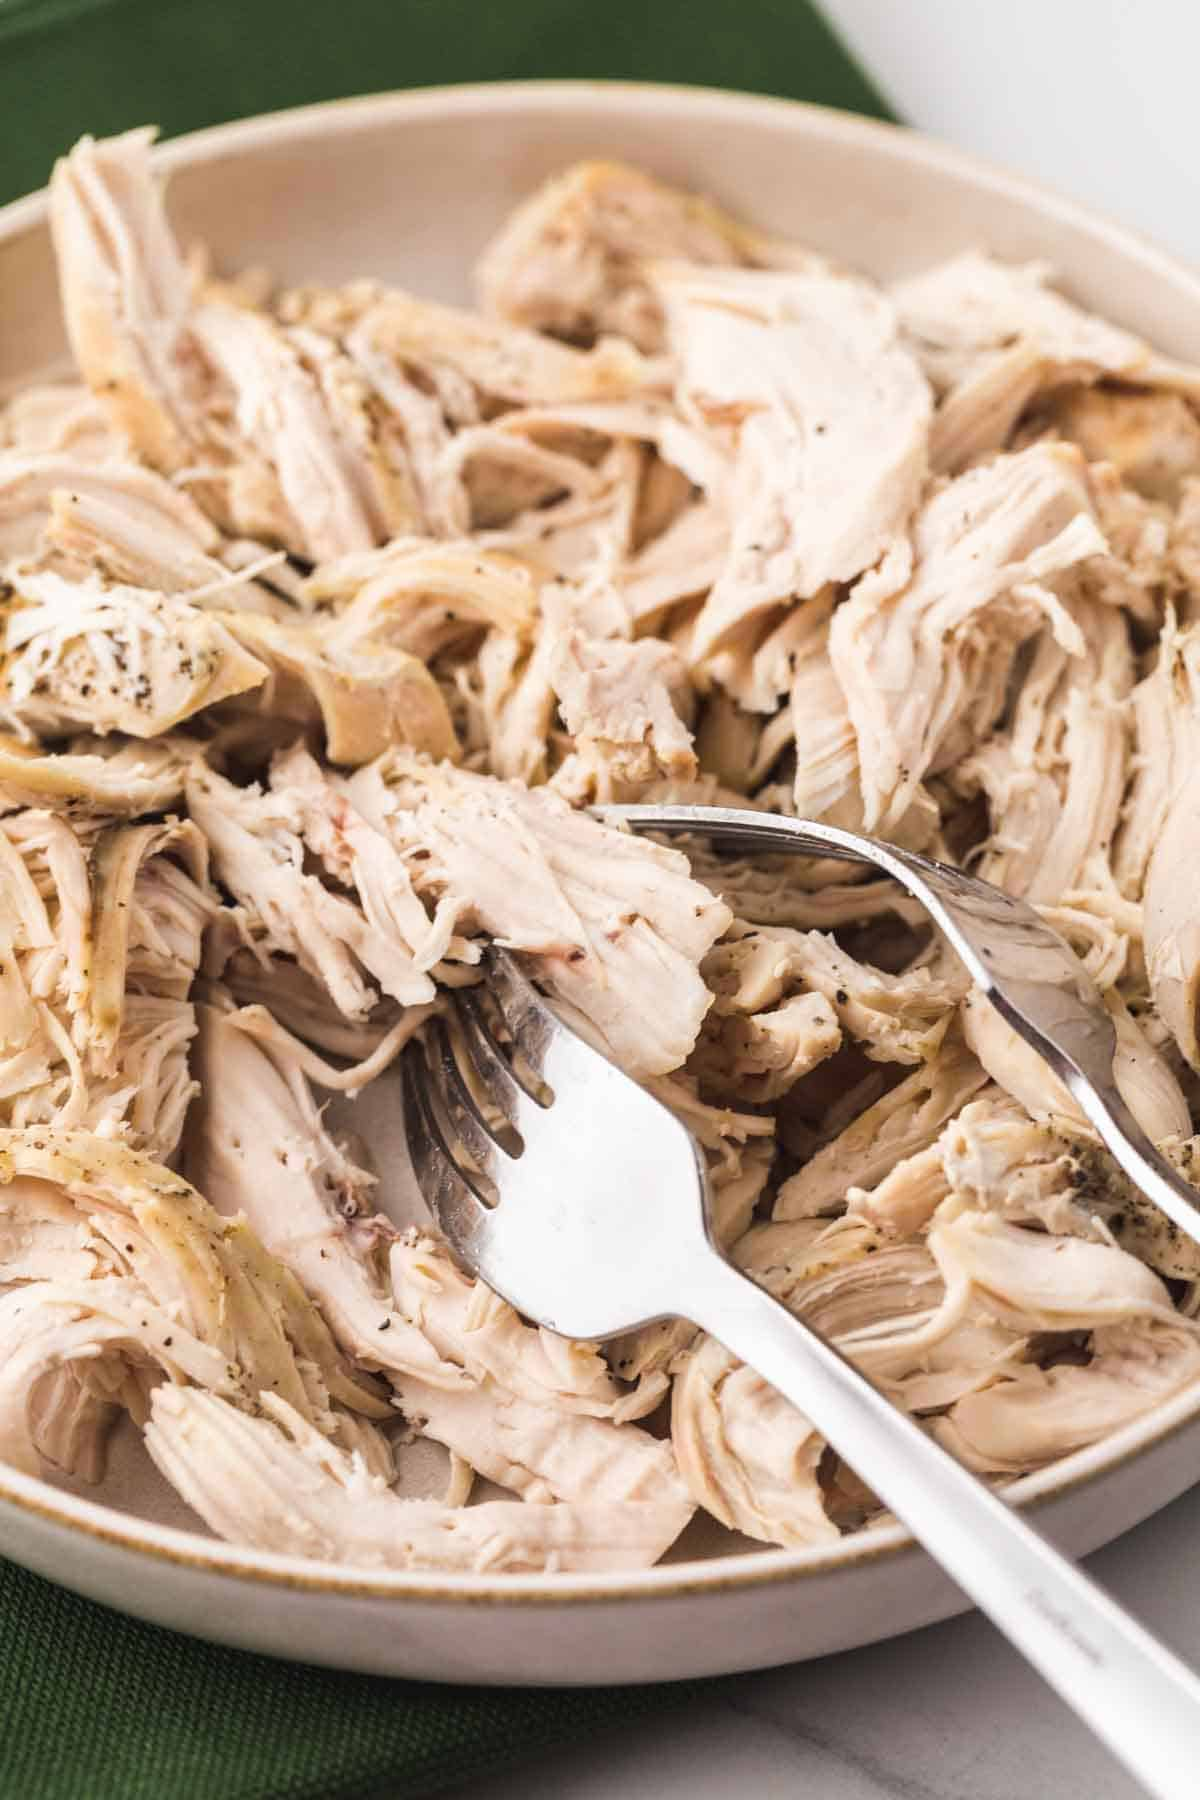 Shredded chicken on a white plate with 2 forks